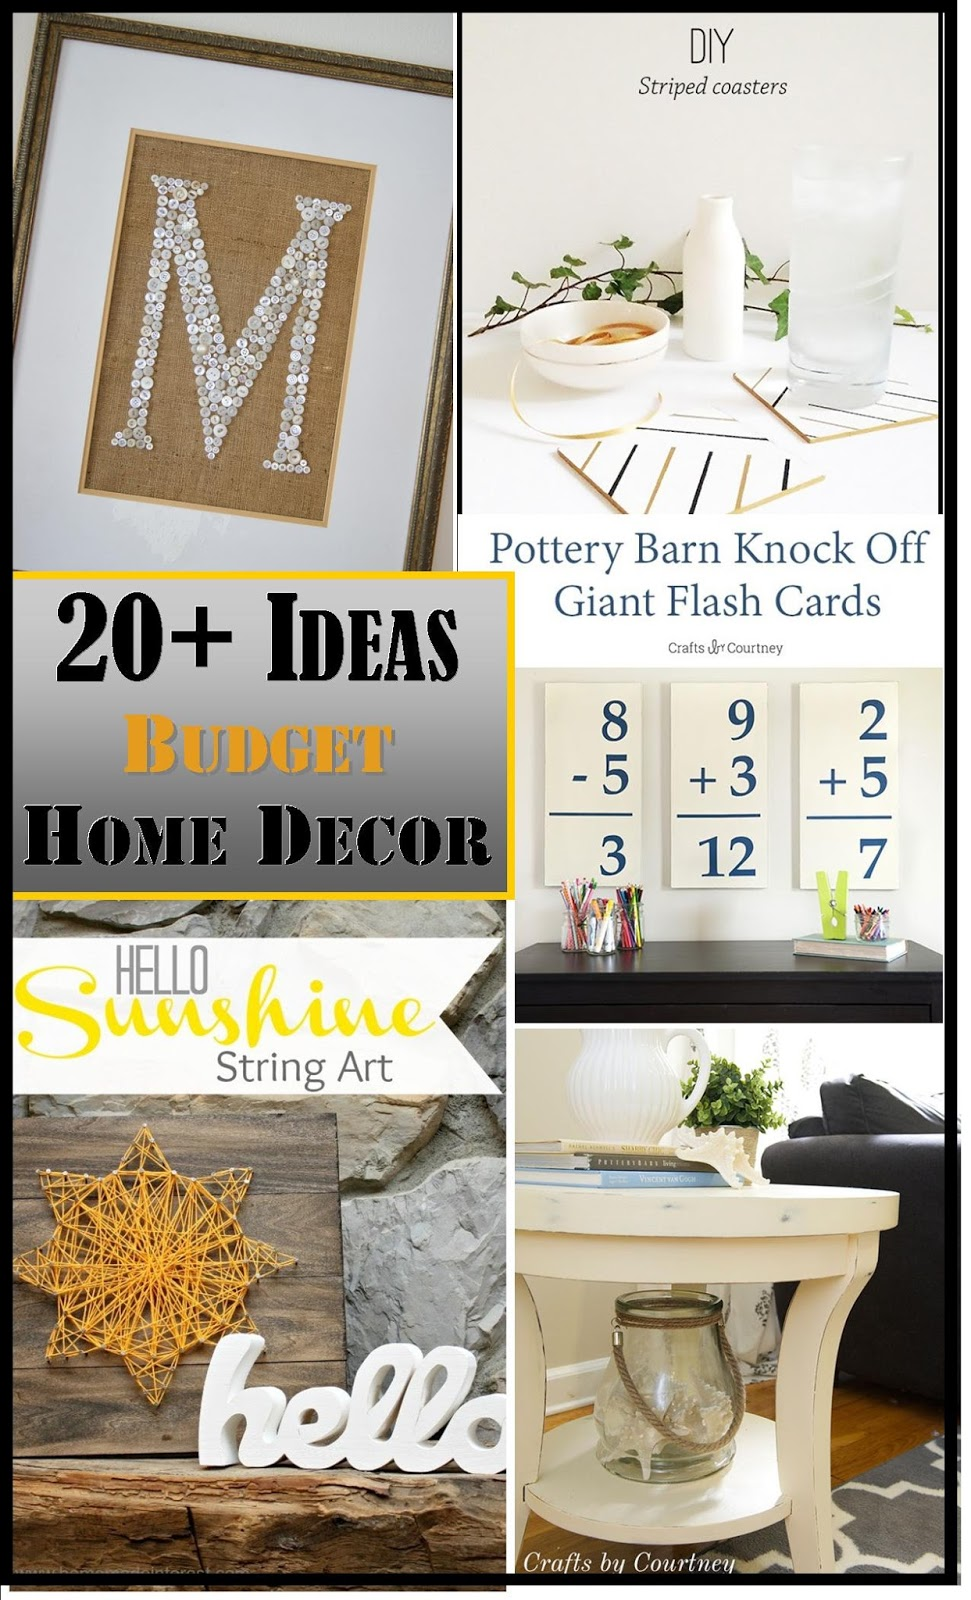 20+ ideas for budget friendly home decor